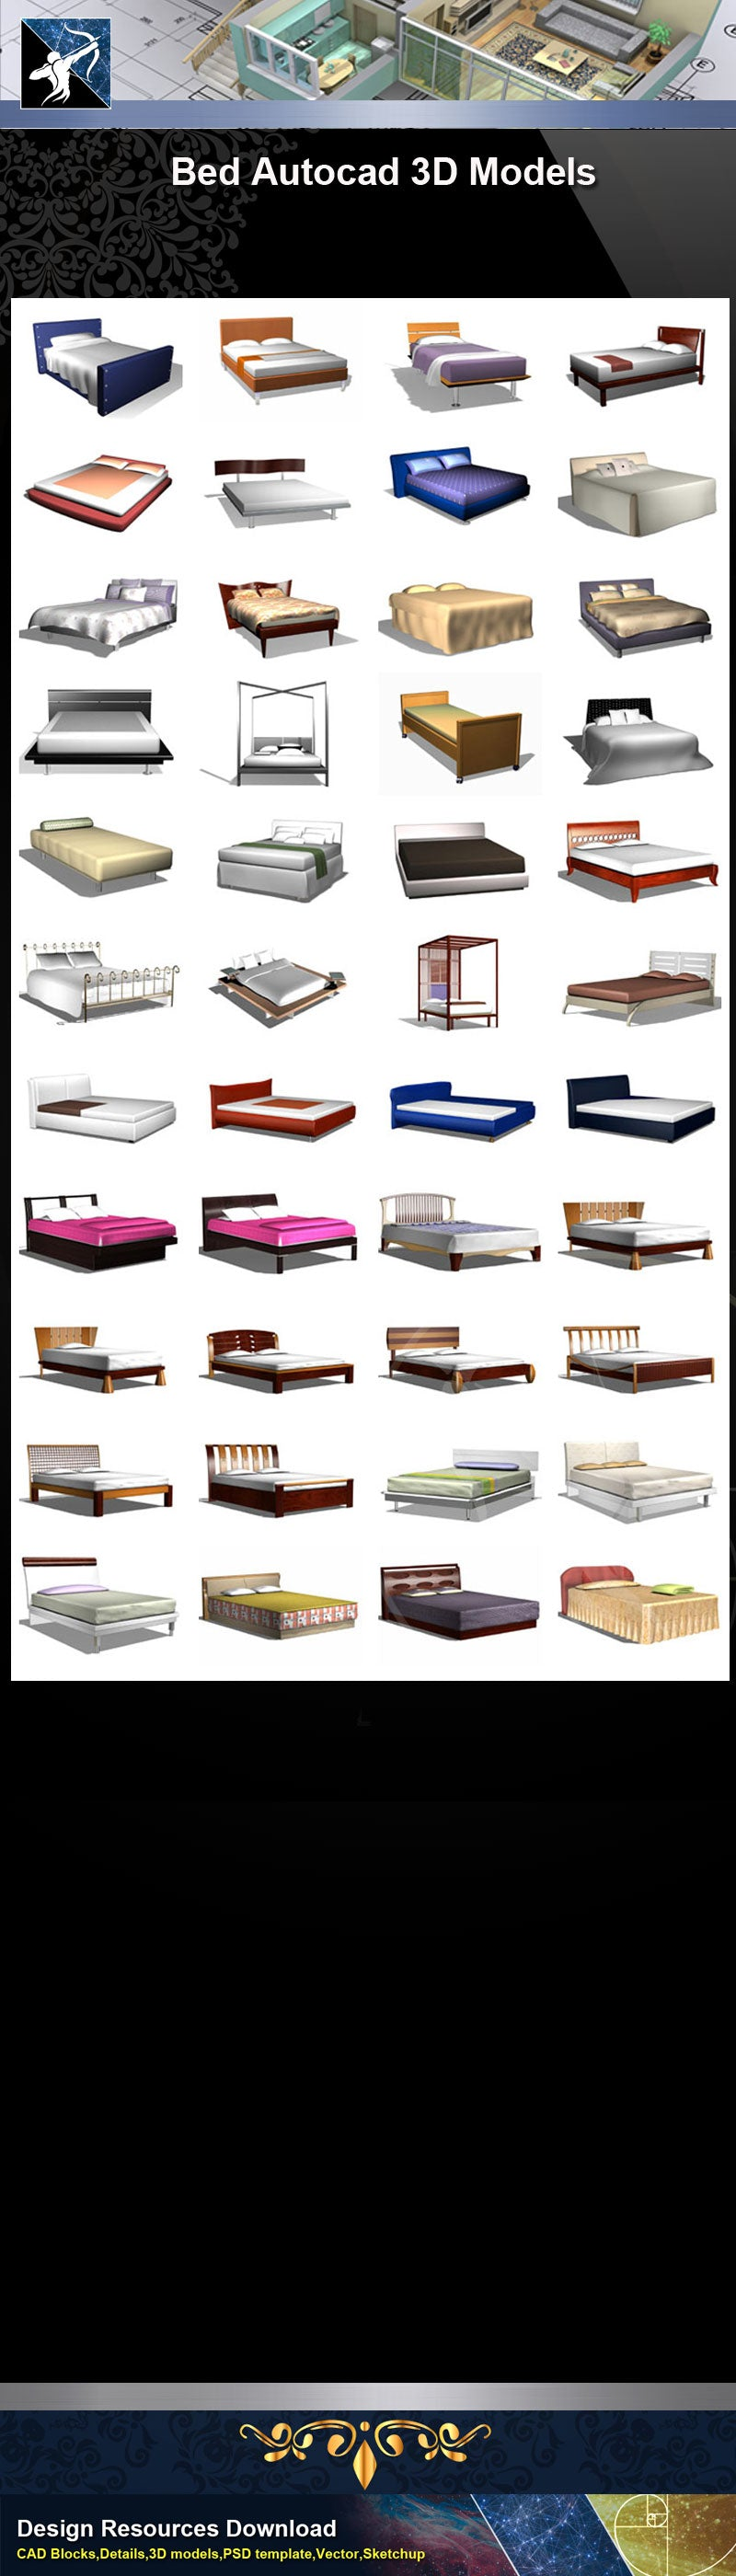 ★AutoCAD 3D Models-Bed Autocad 3D Models